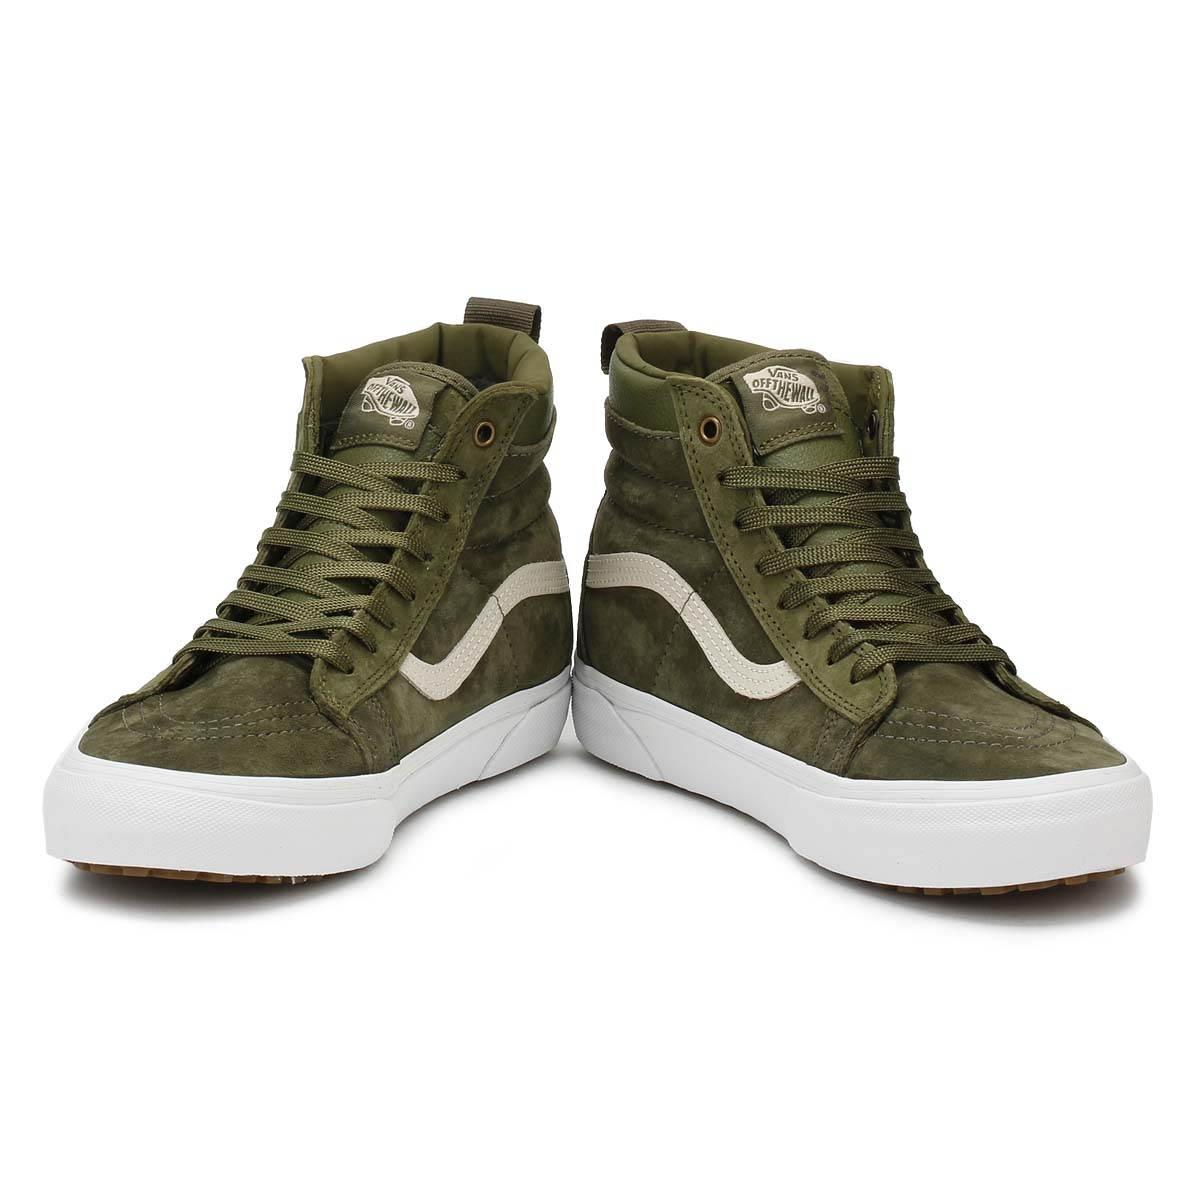 3c2893d72 Vans Mens Trainers Winter Moss Military Green SK8-Hi MTE Casual Skate Shoes